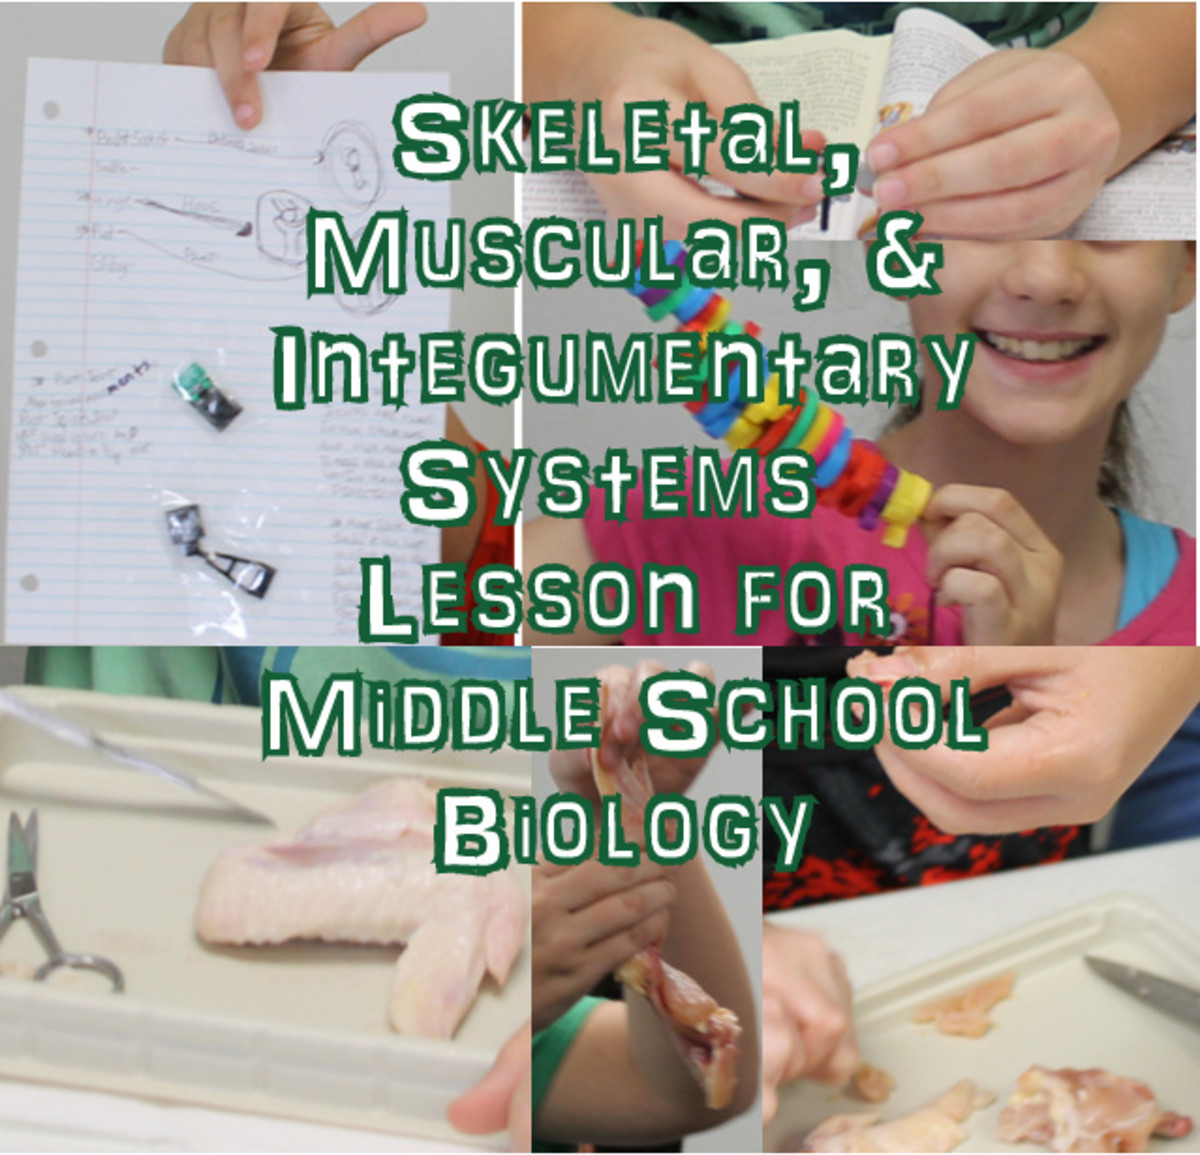 Middle School Biology Lesson on the Skeletal, Muscular, & Integumnetary Systems